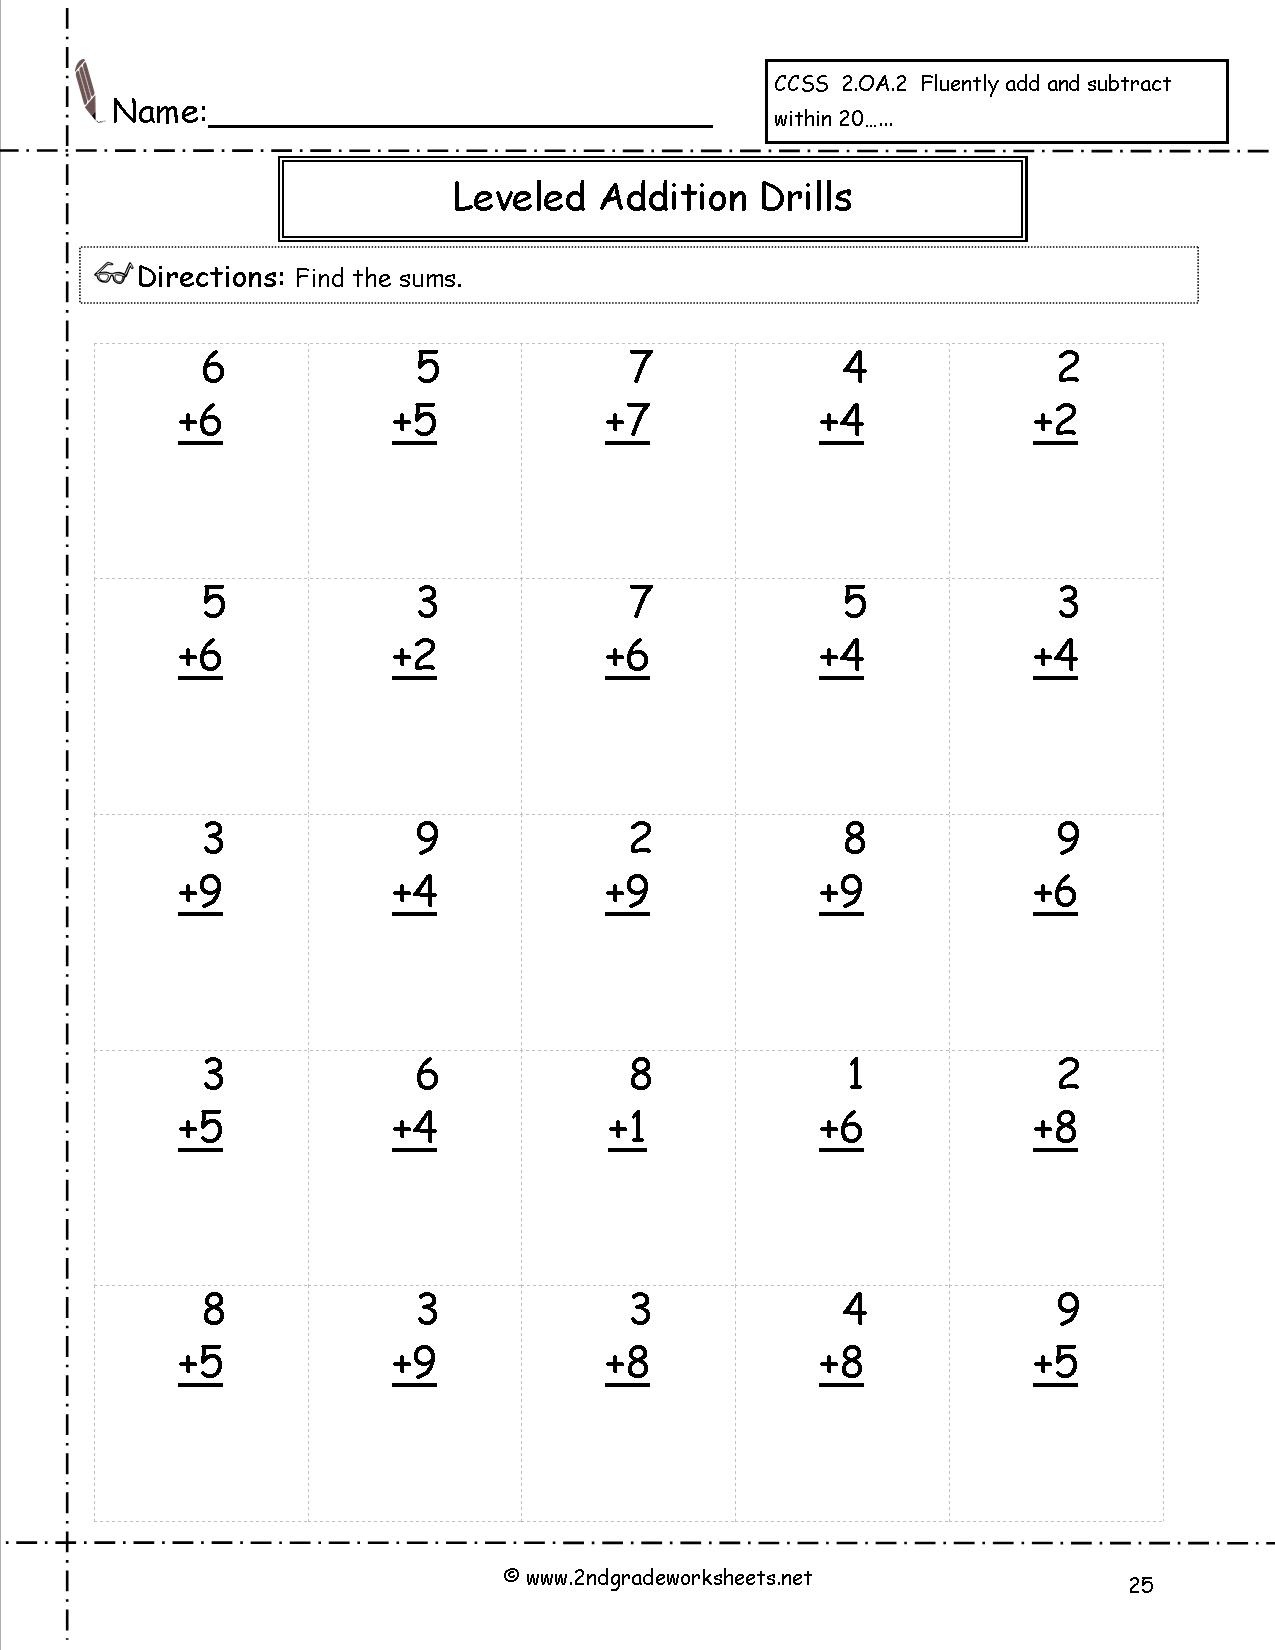 Free Math Worksheets And Printouts - Free Printable Math Practice Sheets